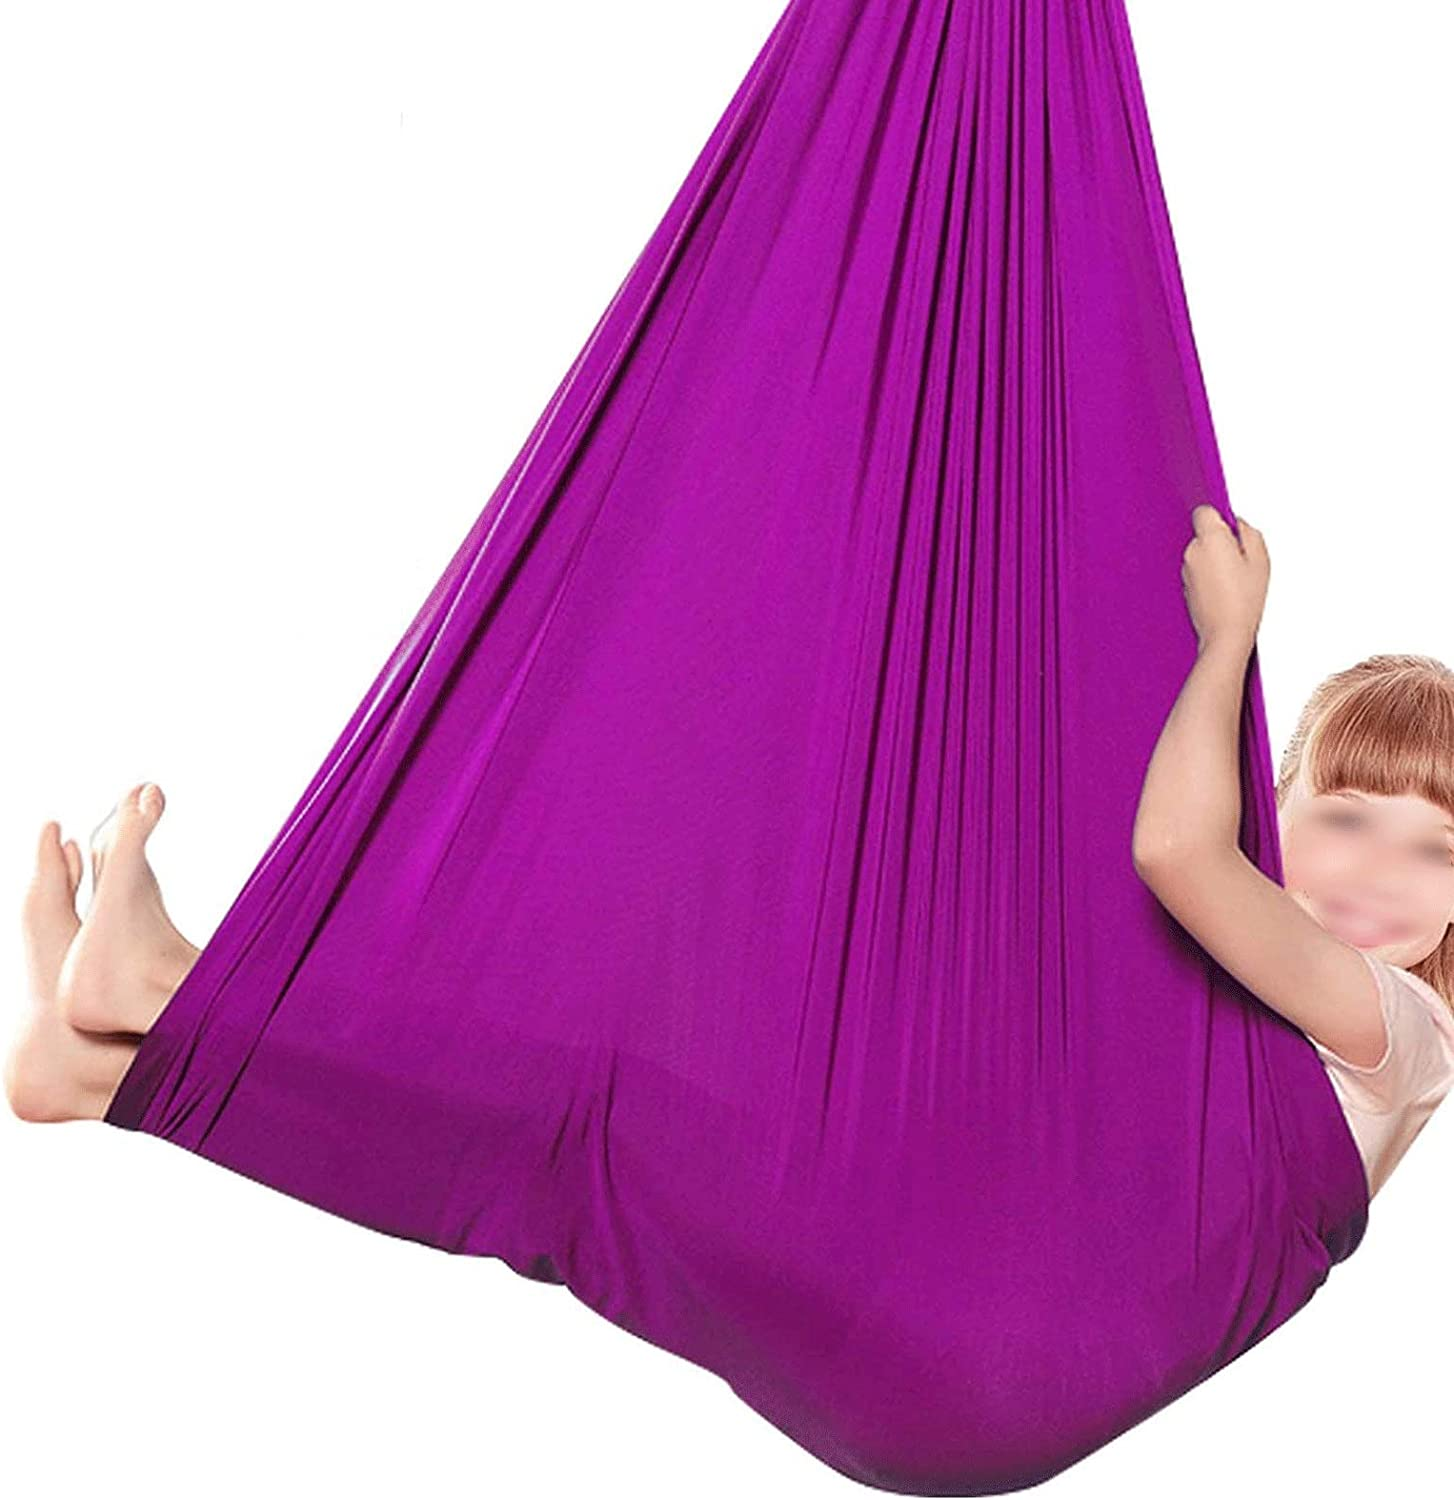 YXYH Indoor Outdoor Sensory Swing for Soft Therapy Kids 40% OFF Cheap Overseas parallel import regular item Sale